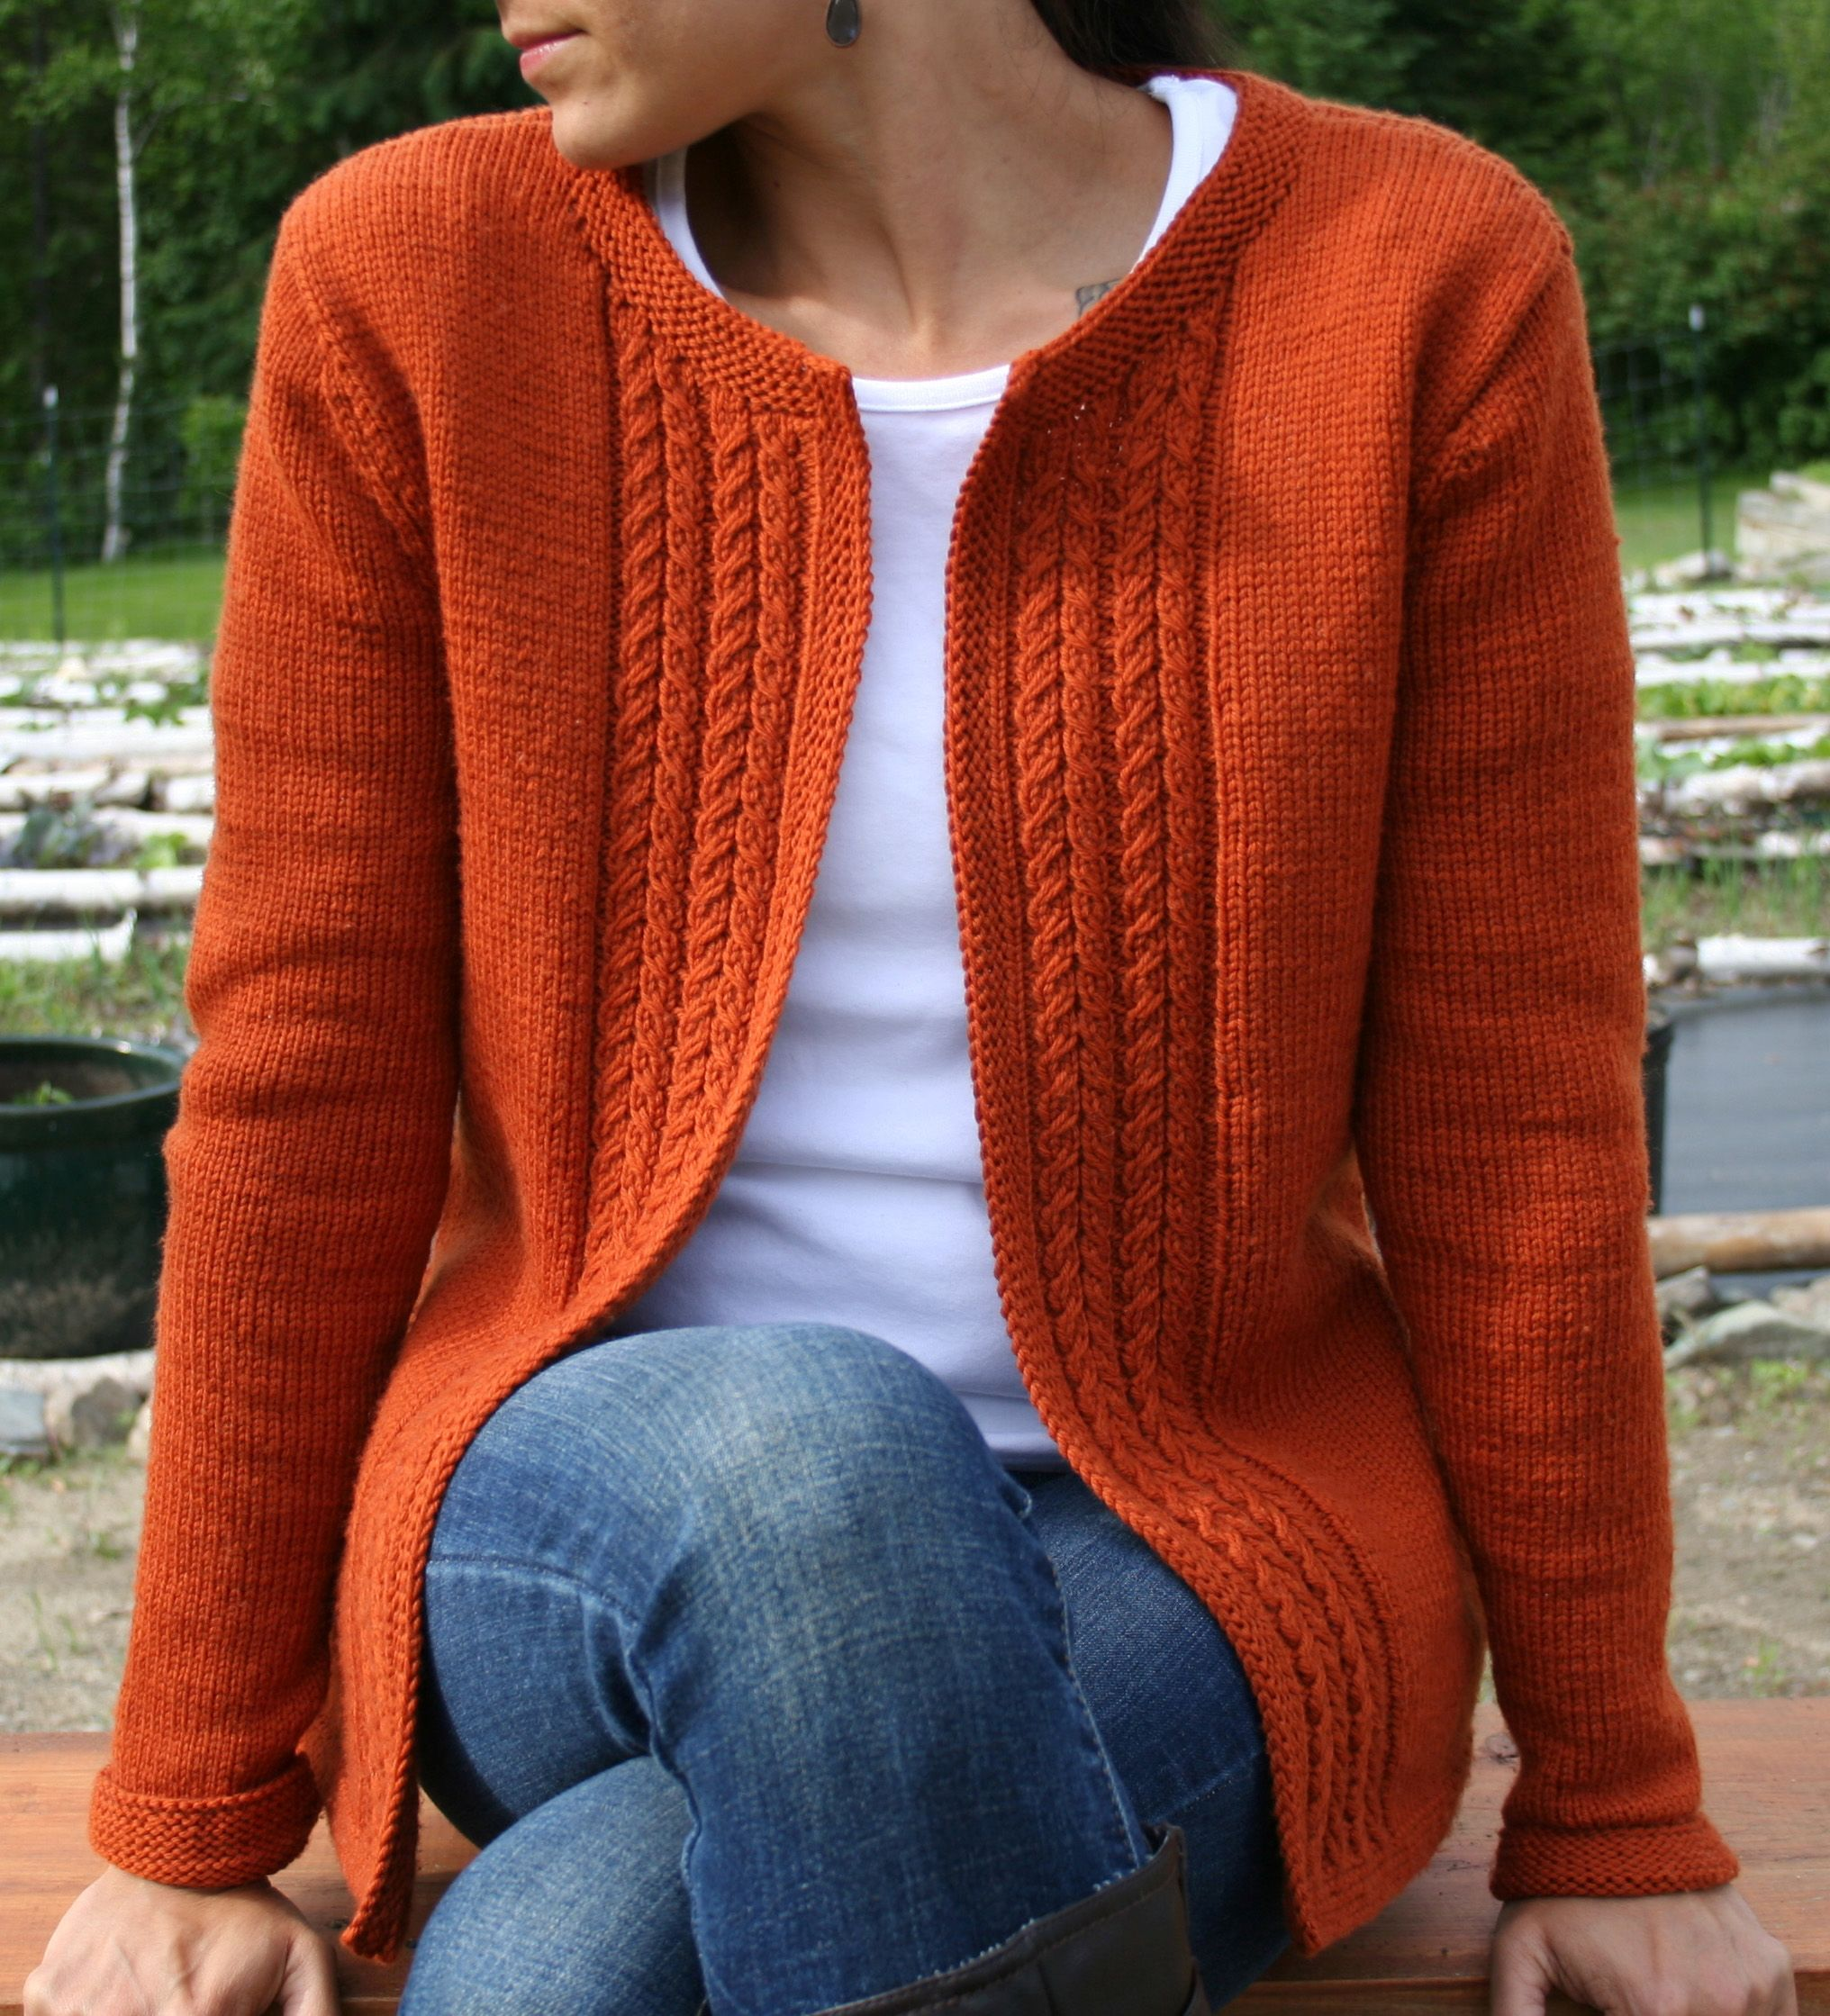 Knitting Patterns Womens Sweaters : Casual Cardigan Pattern - Knitting Patterns and Crochet Patterns from KnitPic...